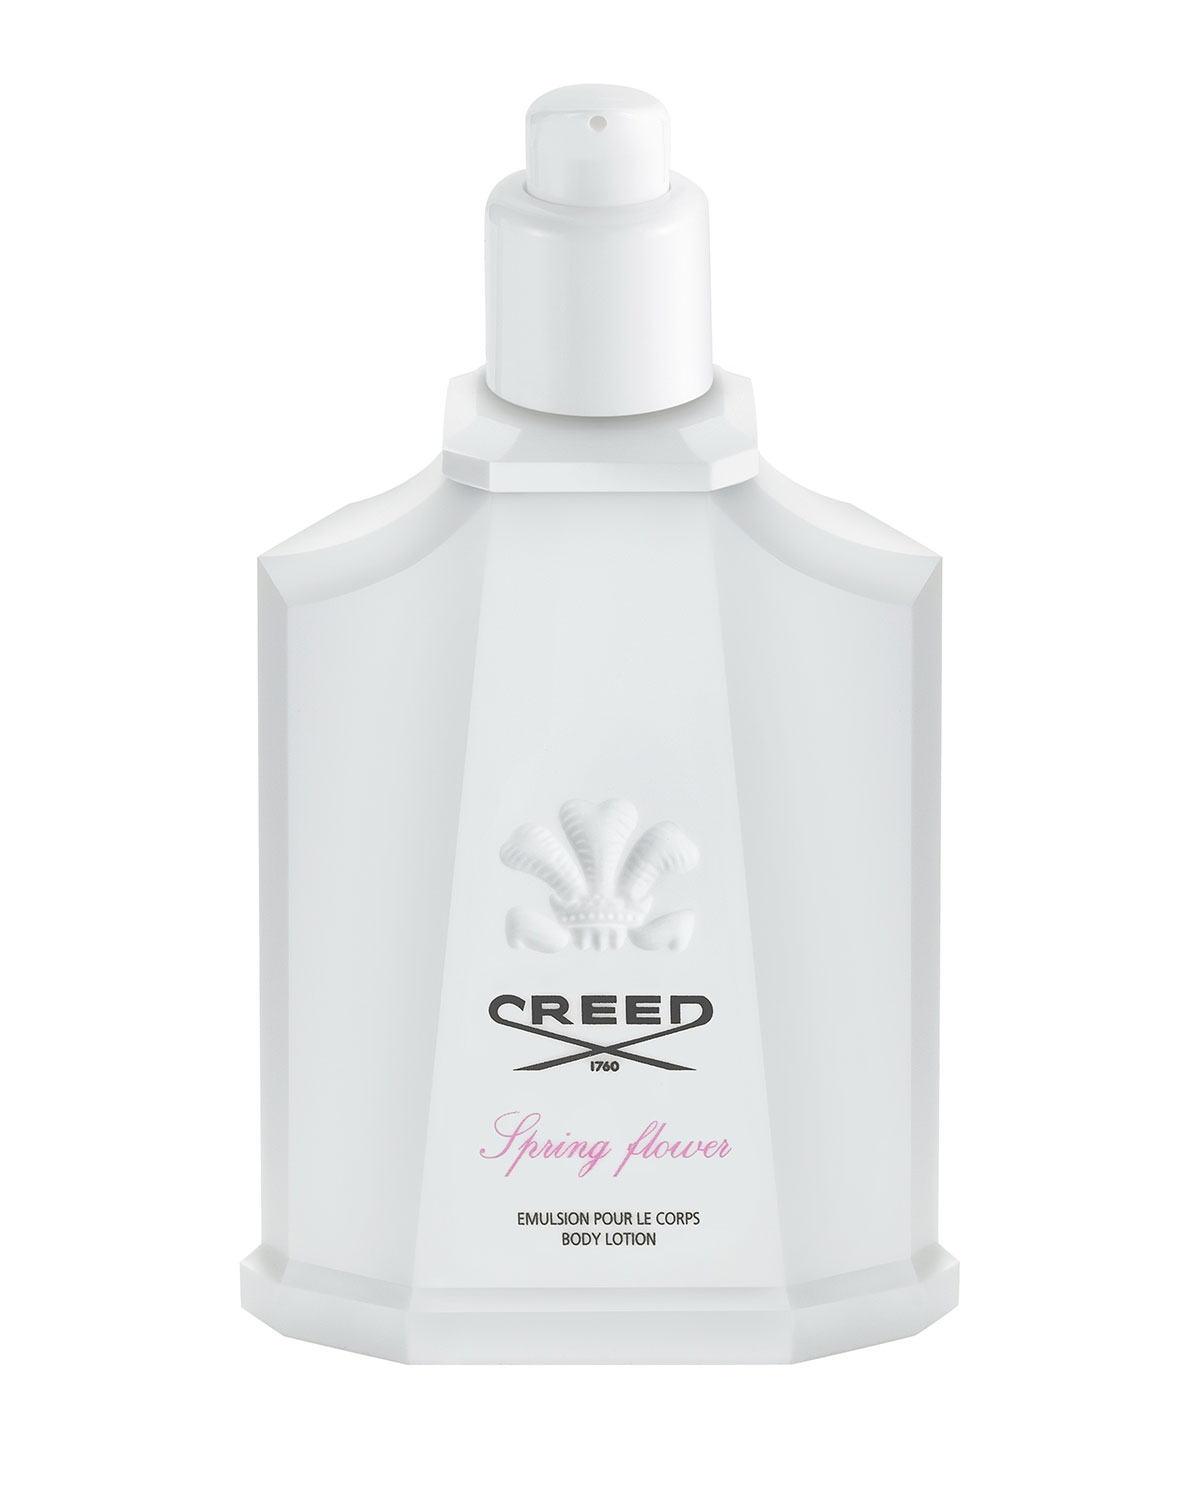 Creed Spring Flower Body Lotion Neiman Marcus